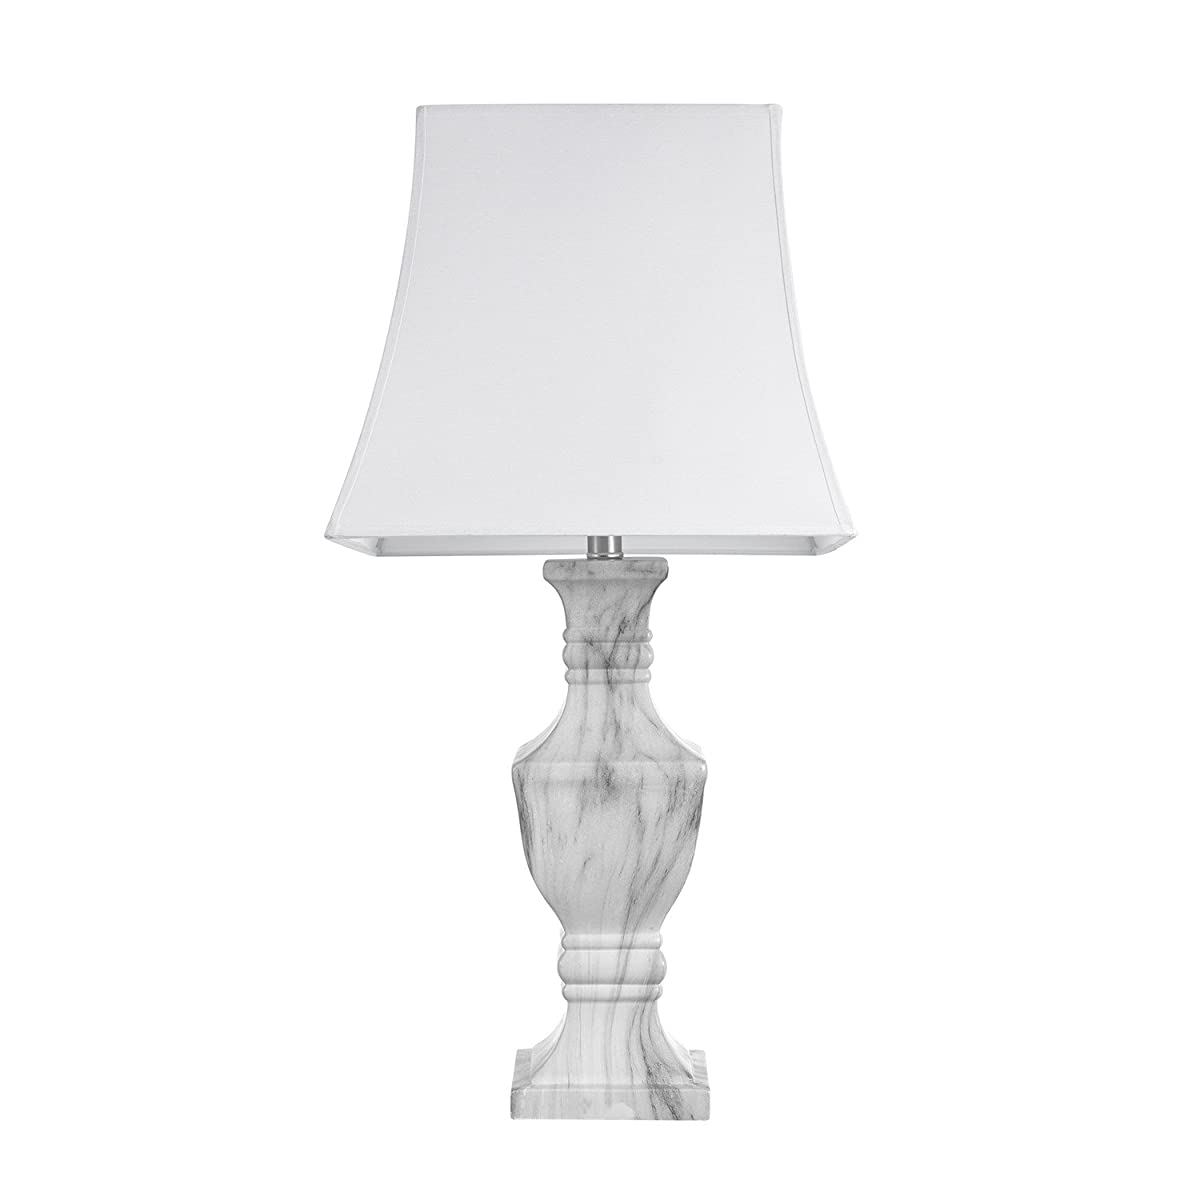 Globe Electric 12751 Marble Finish Table Lamp, White